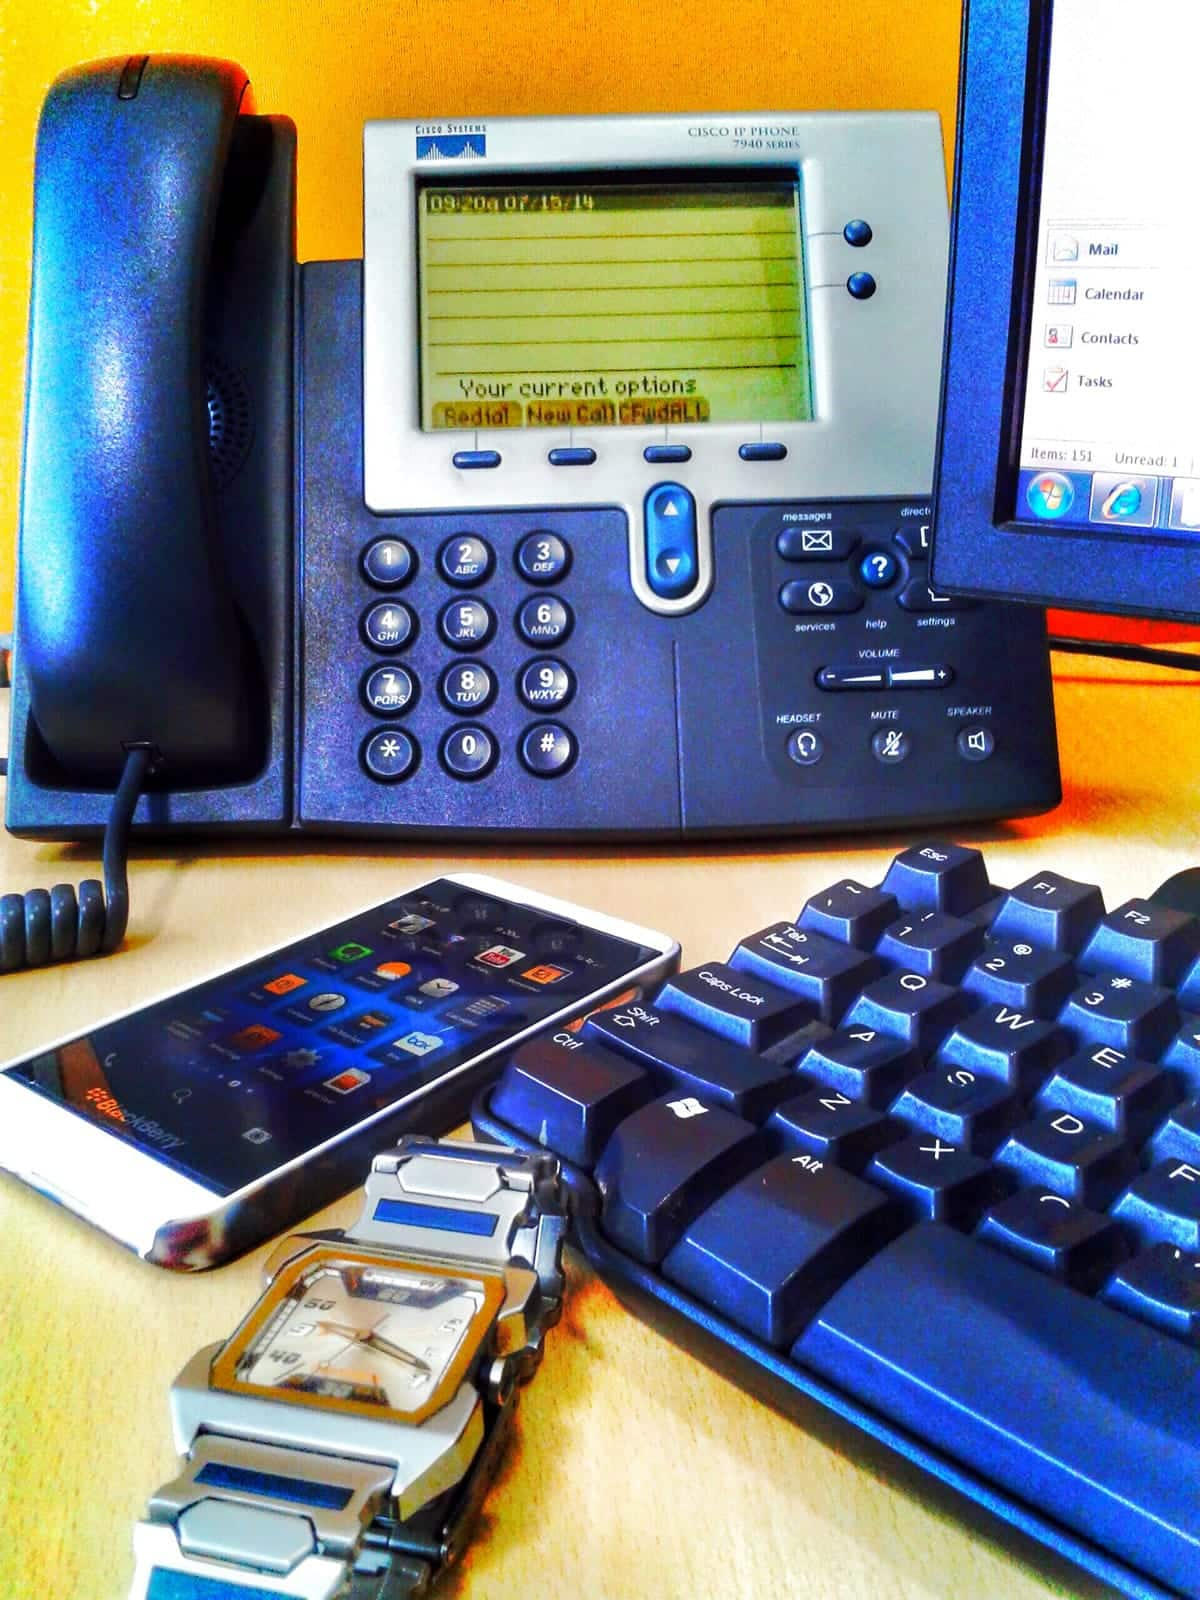 A smartphone, watch, computer and office phone on a desk.